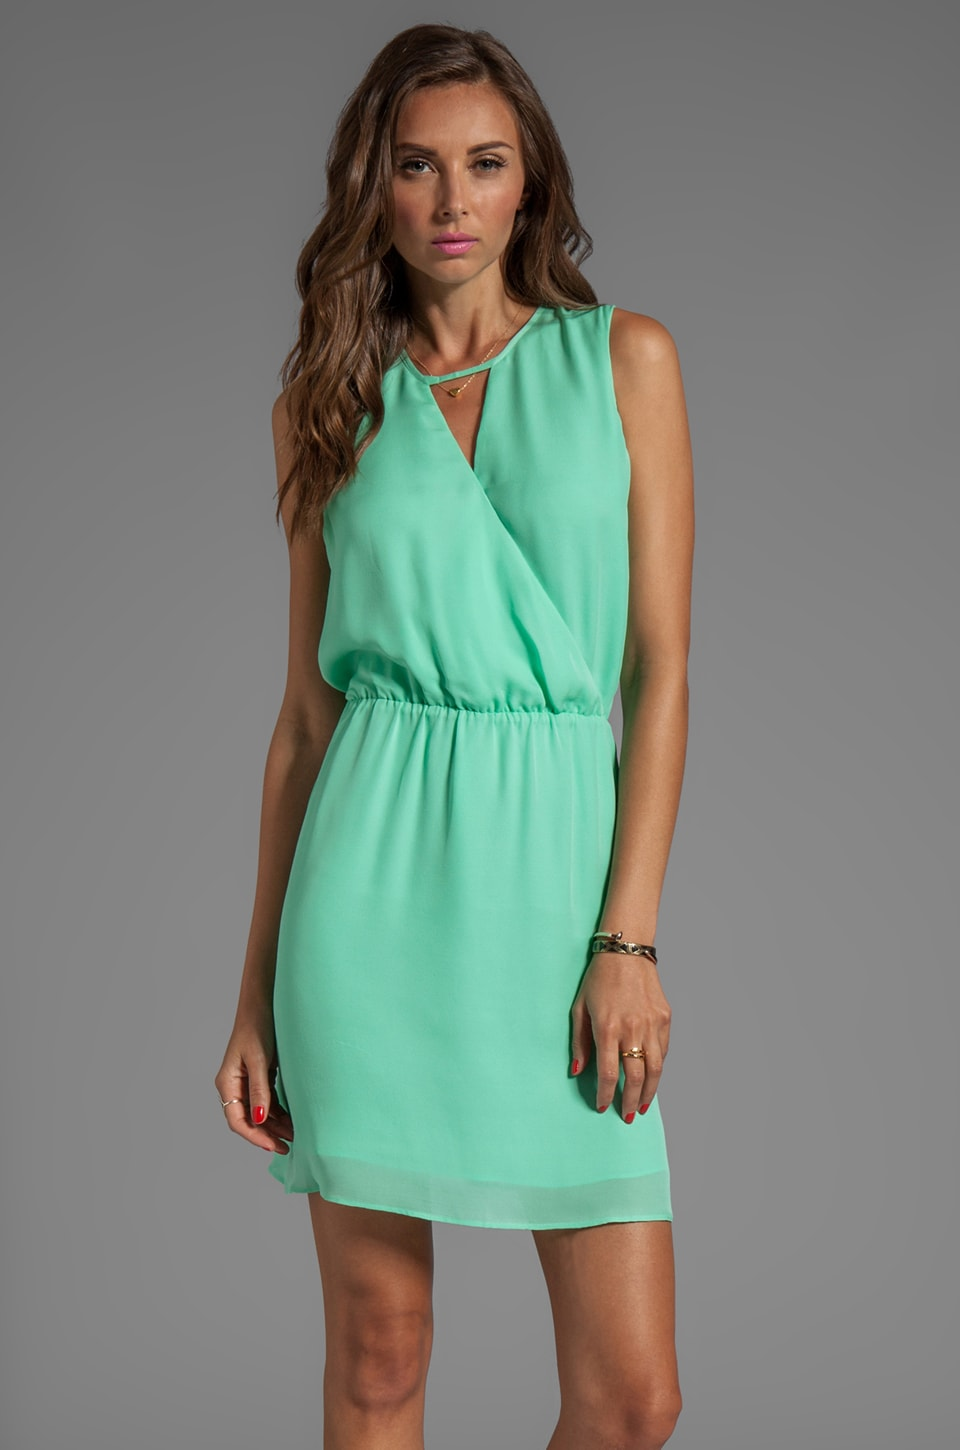 Parker Suri Dress in Honeydew